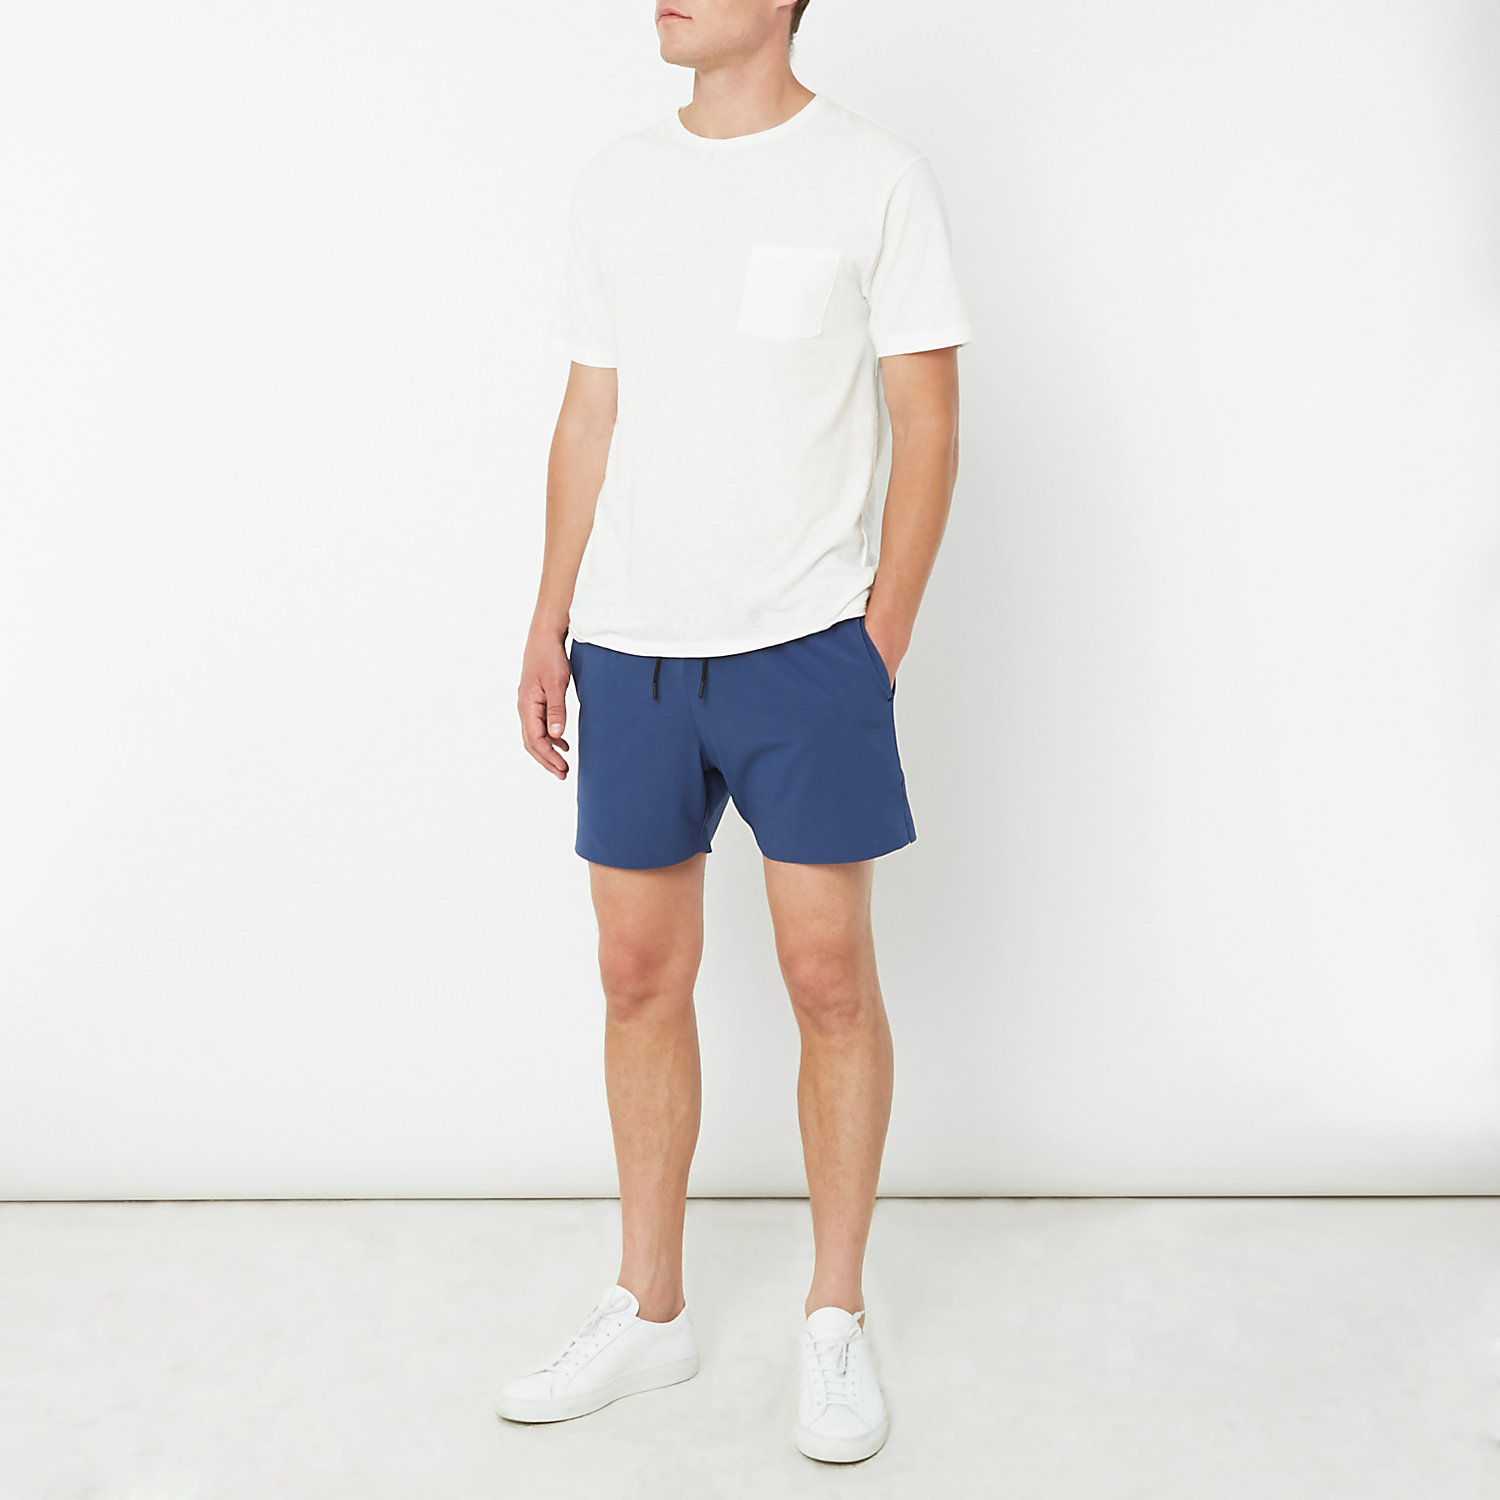 THE CHARLES 5 SHORT